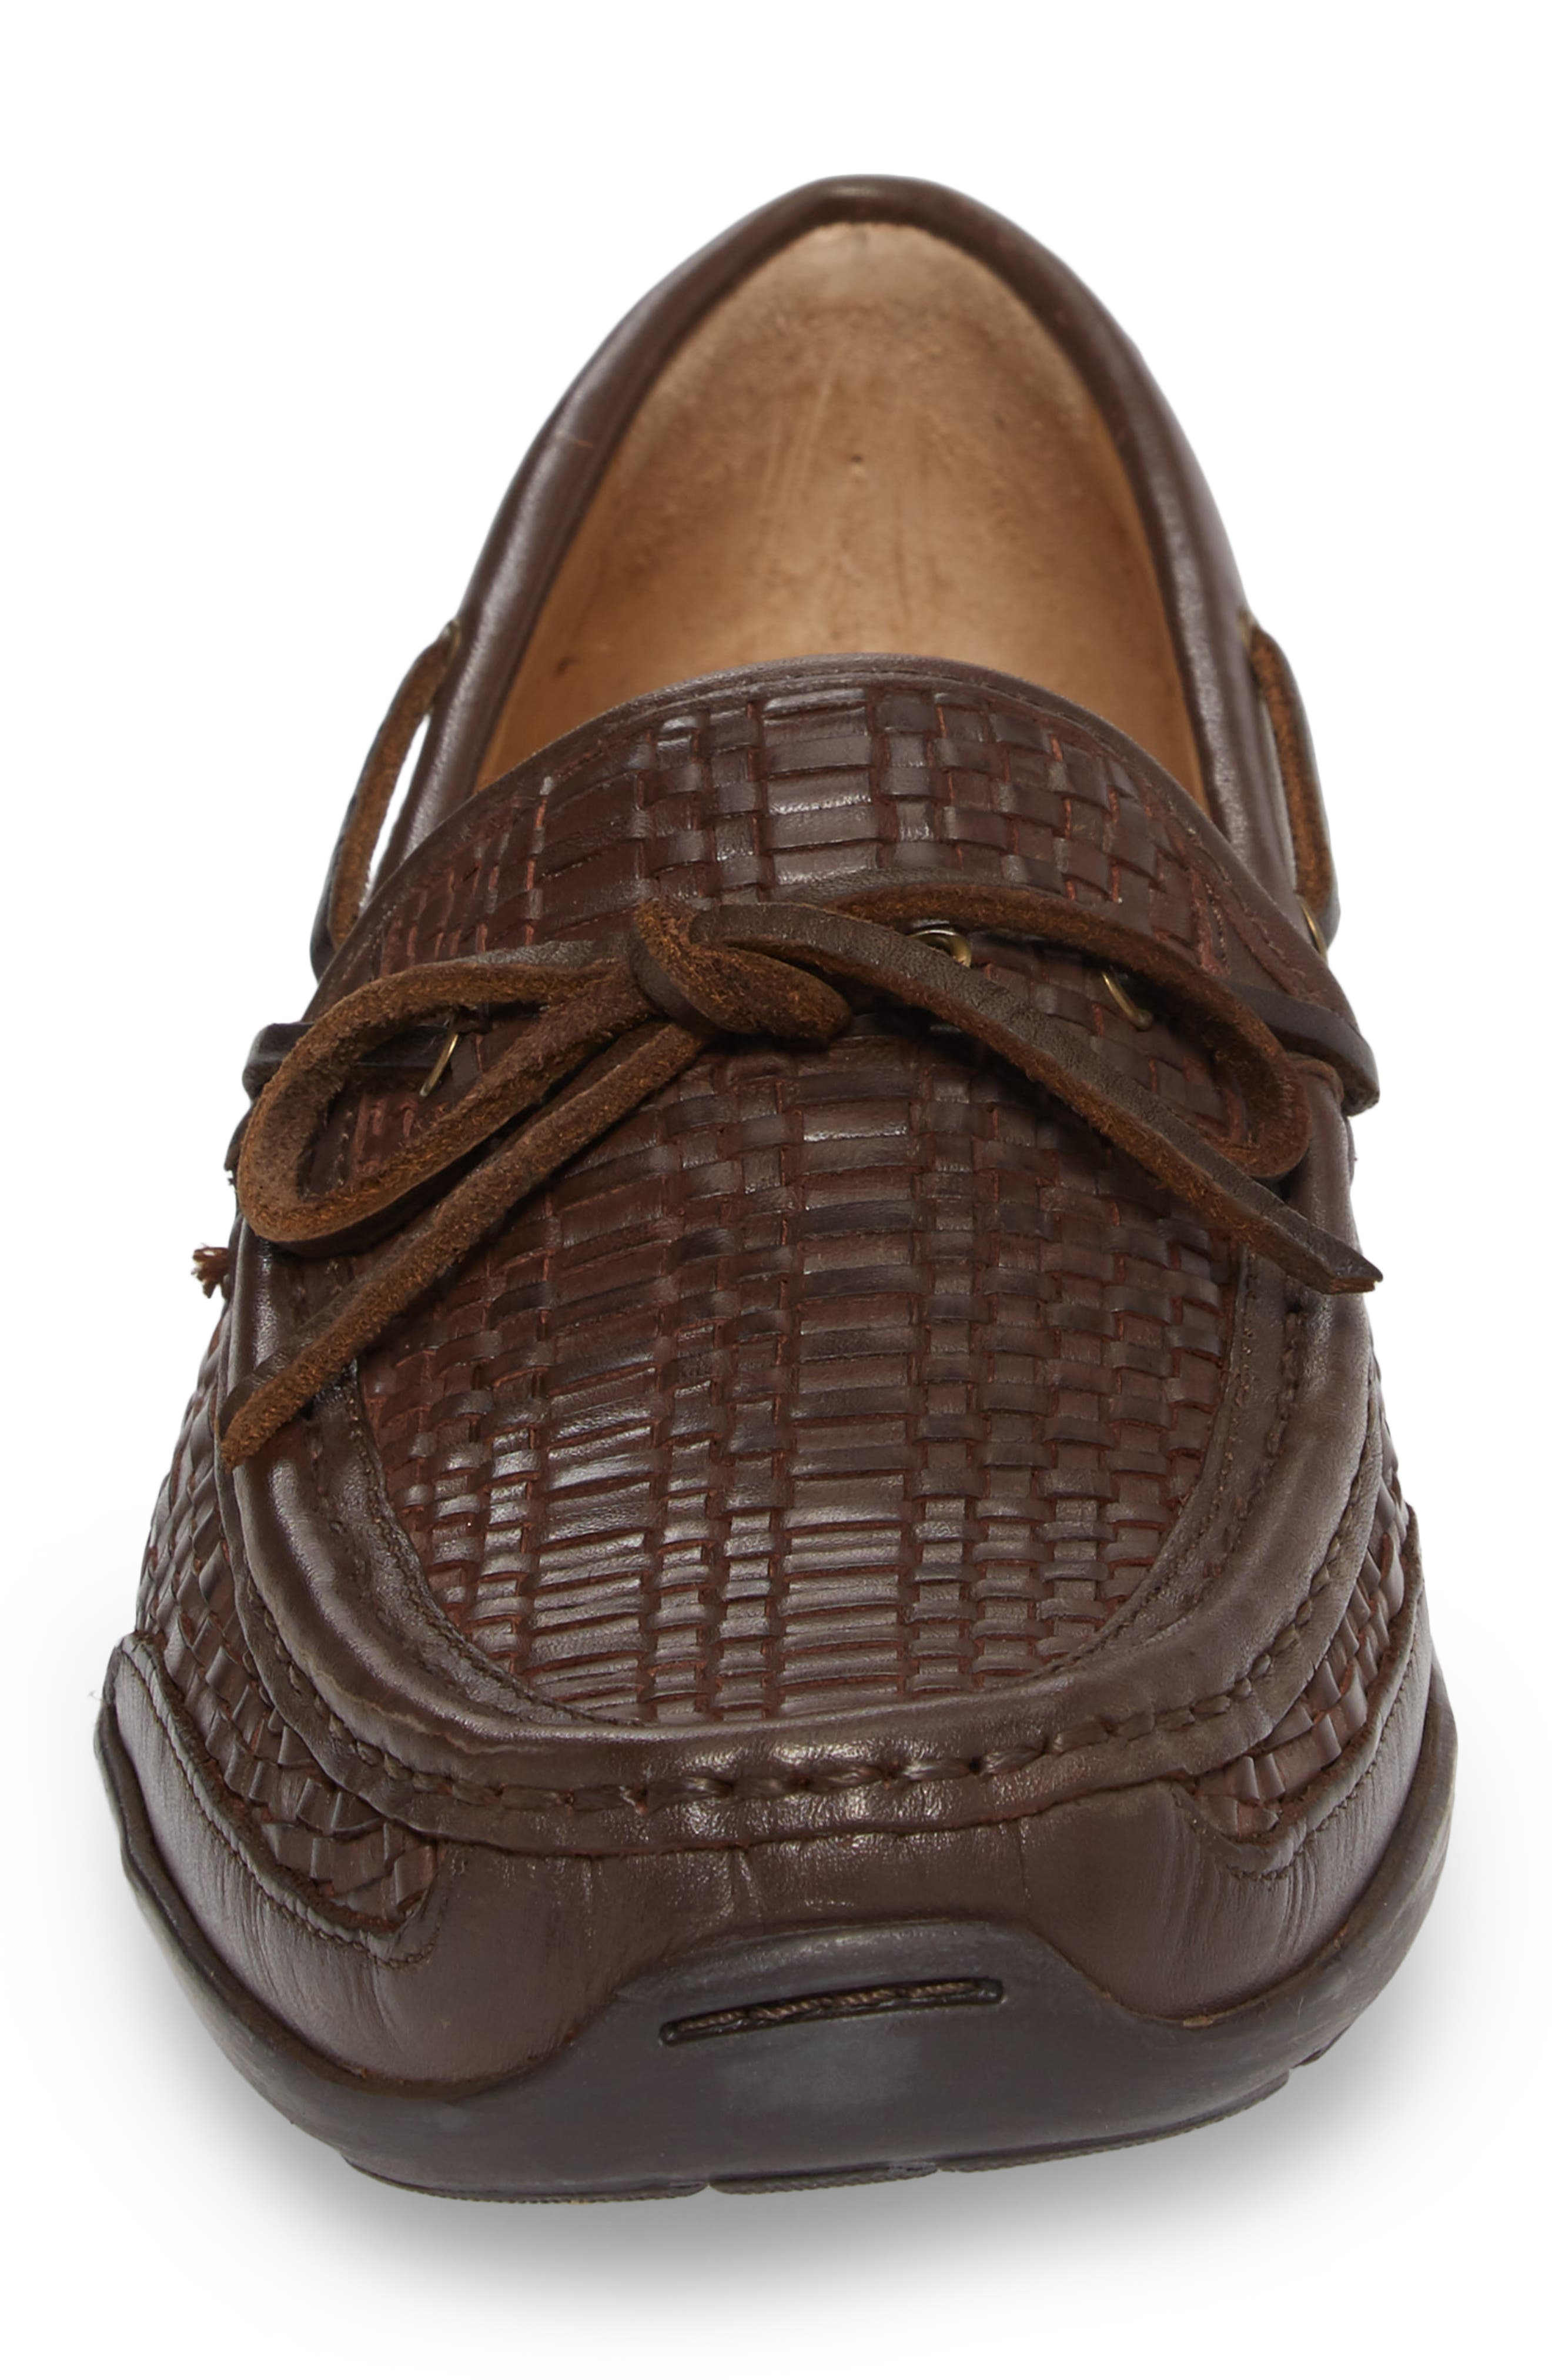 Tangier Driving Shoe,                             Alternate thumbnail 4, color,                             DARK BROWN WOVEN LEATHER